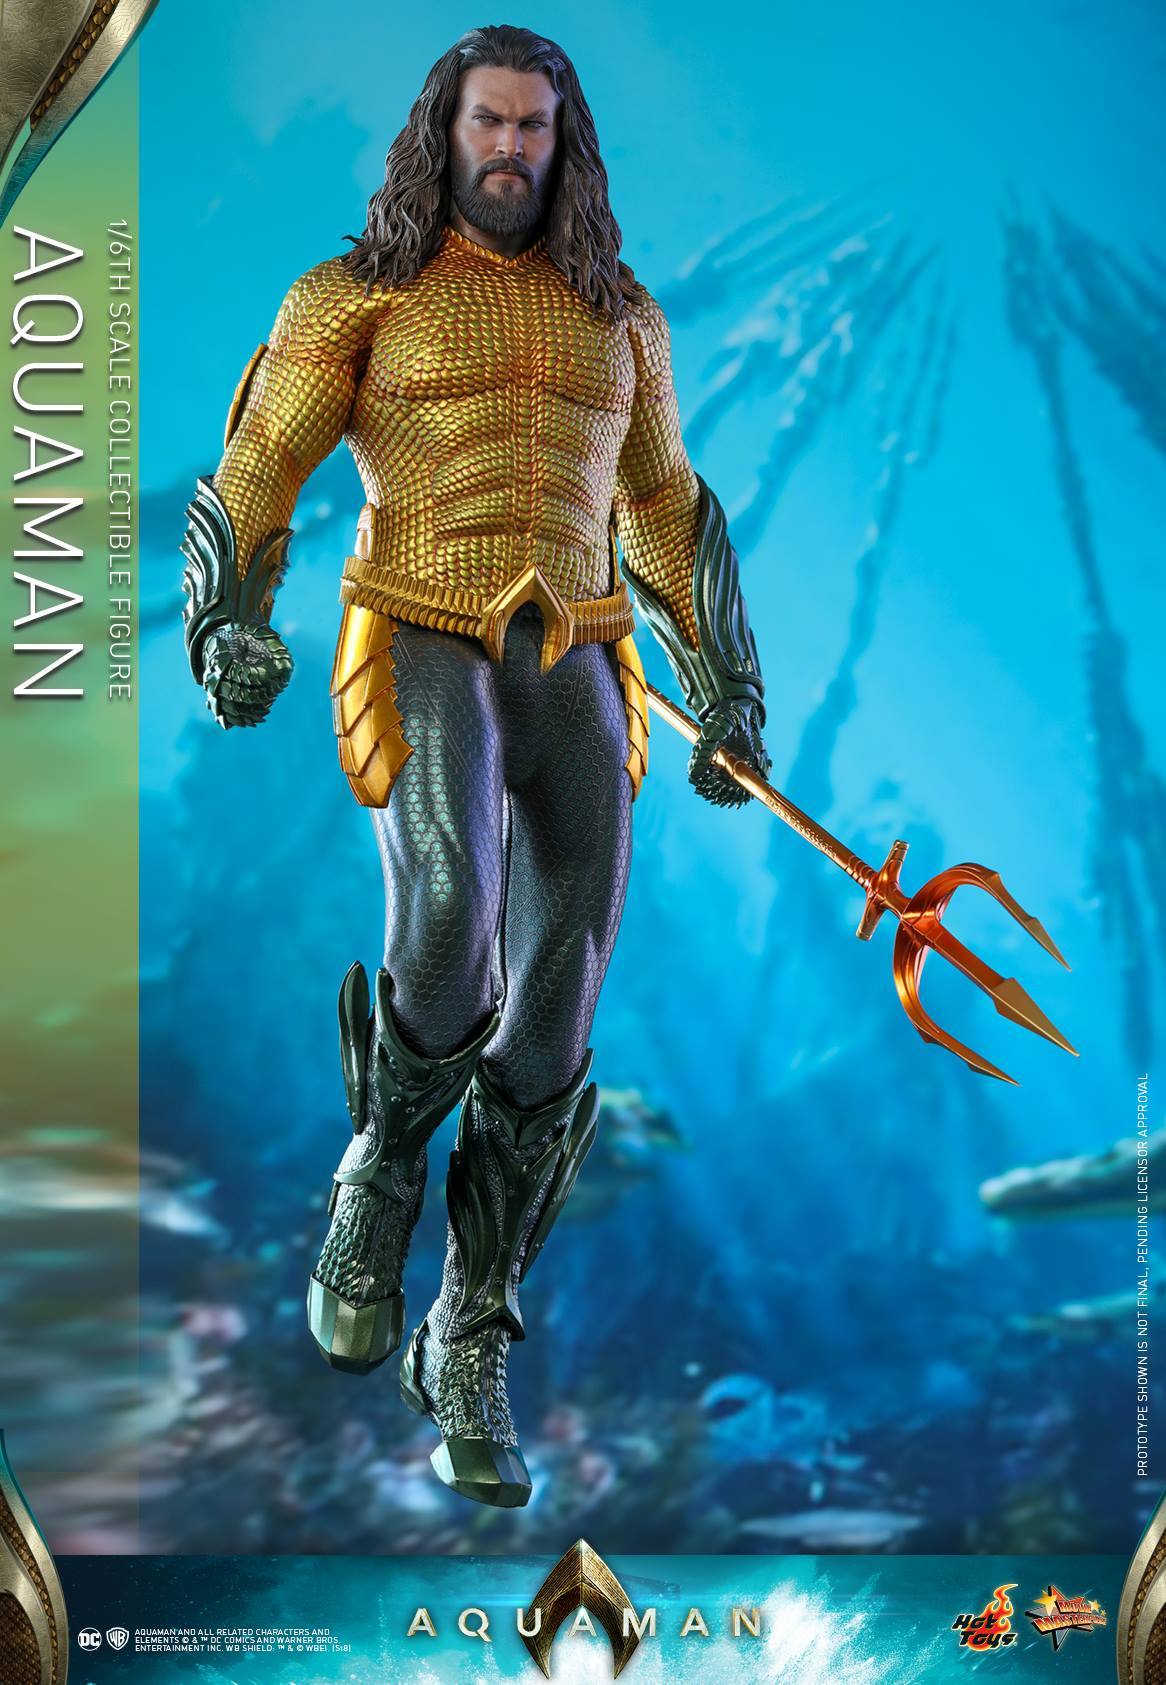 Hot Toys DC Comics Aquaman Movie Sixth Scale Figure